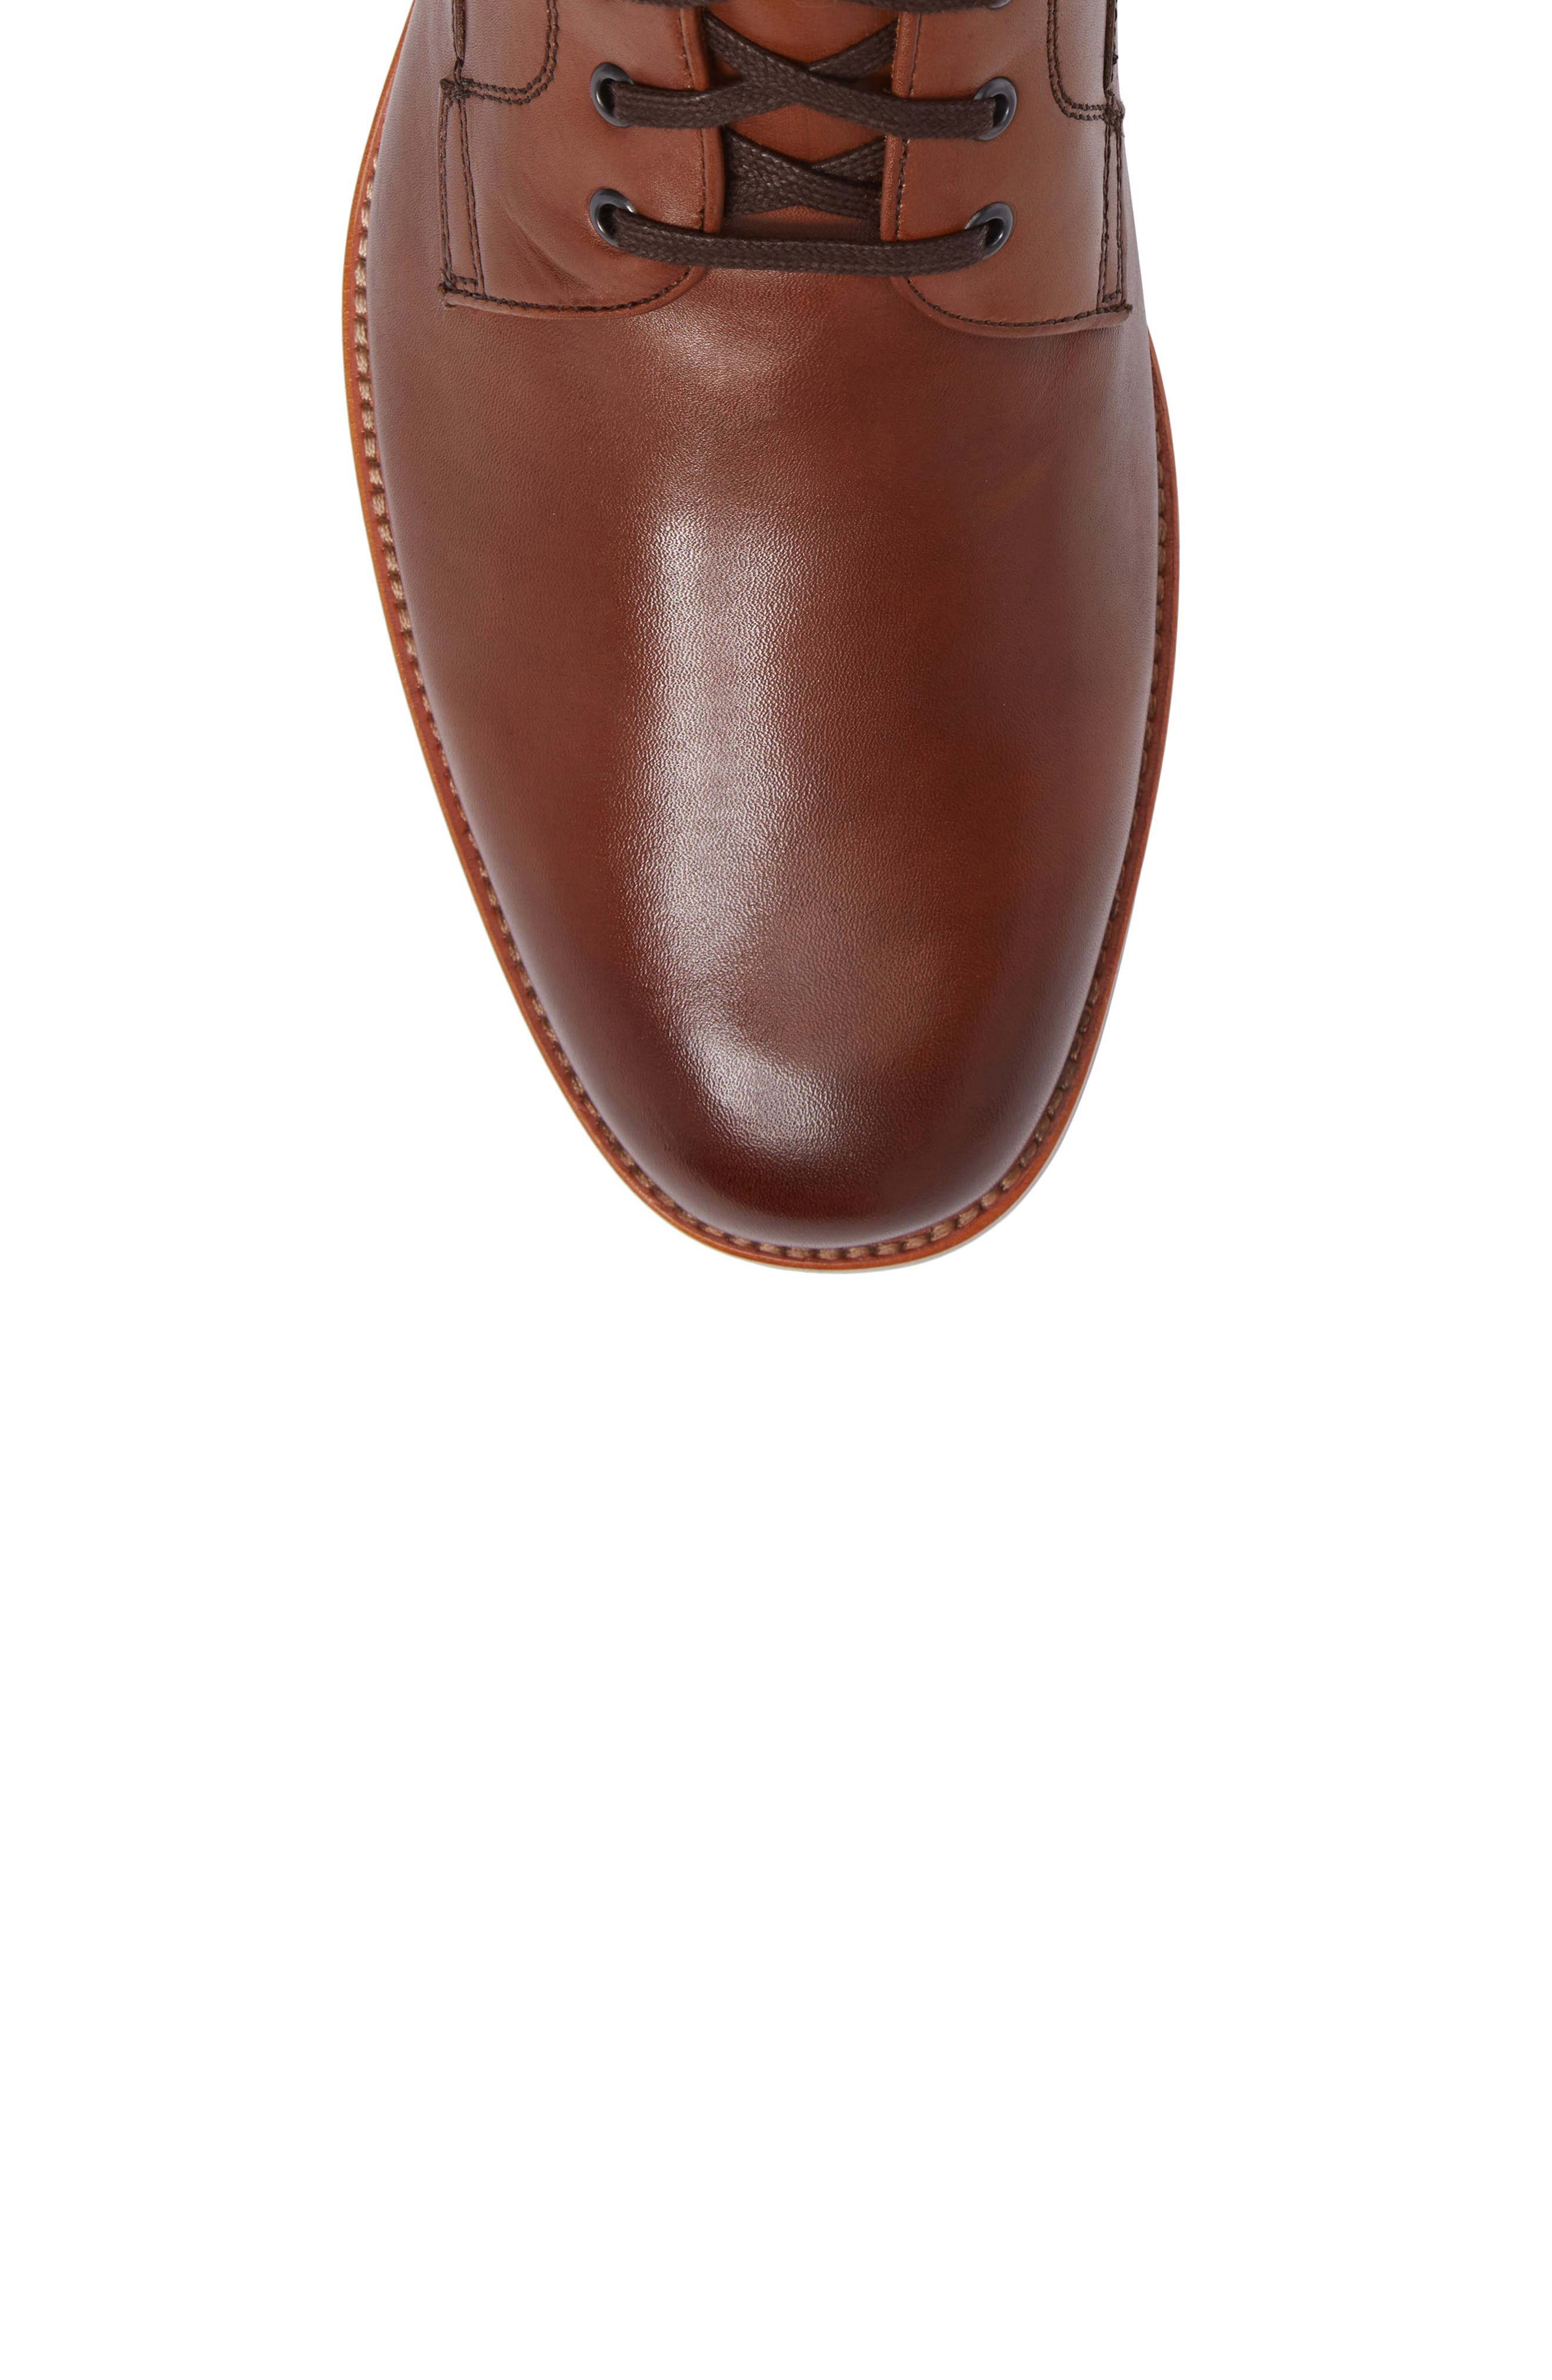 Axeford Plain Toe Boot,                             Alternate thumbnail 5, color,                             Luggage Leather